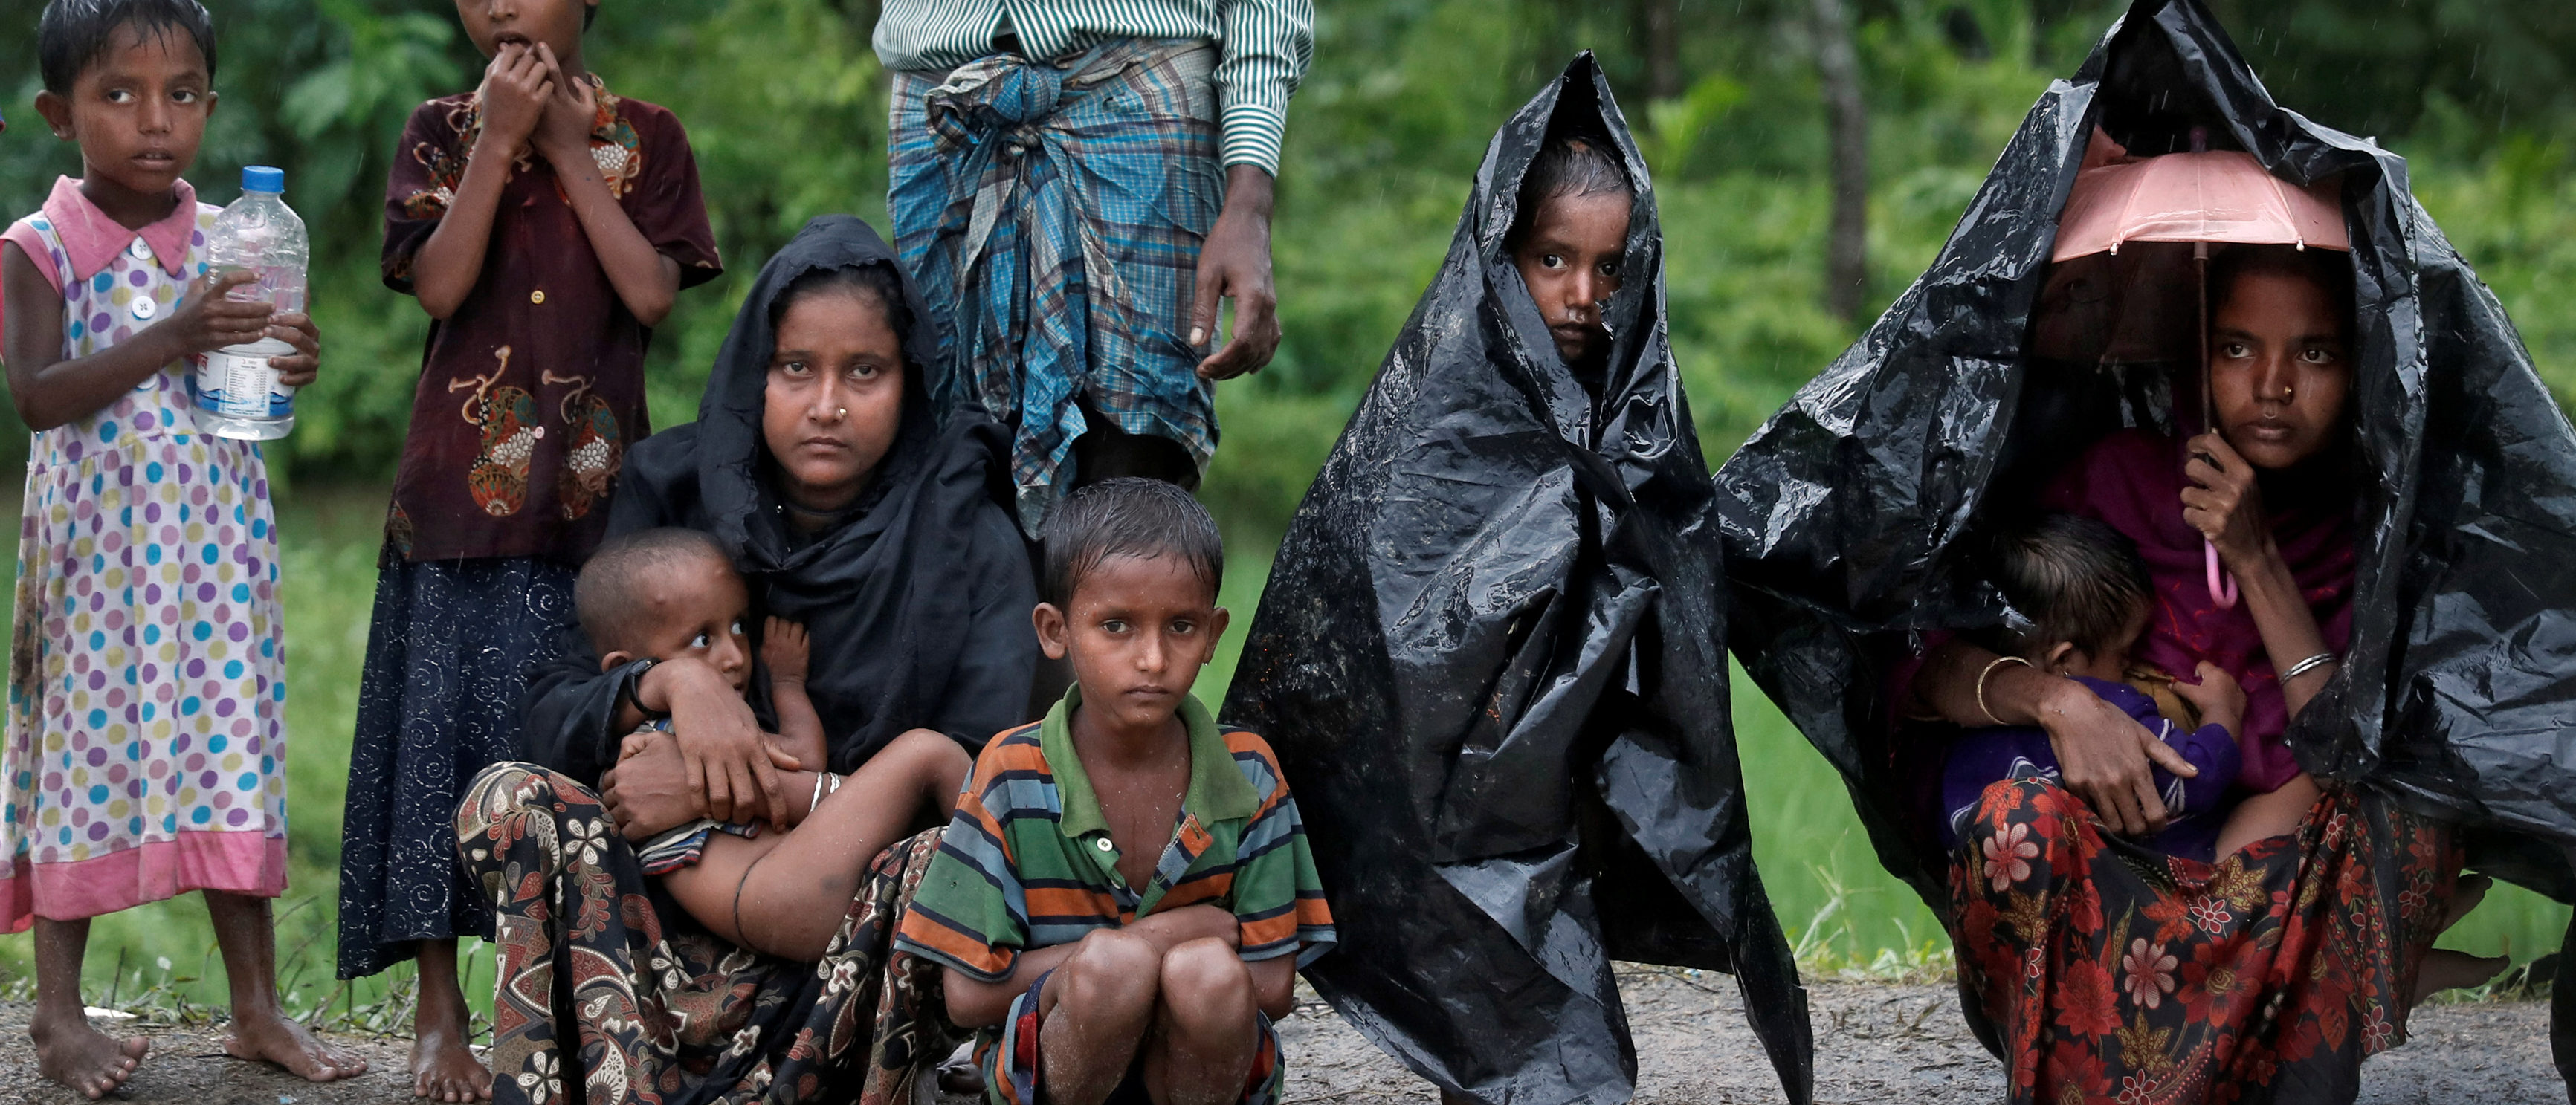 Rohingya refugees wait for aid in Cox's Bazar, Bangladesh, September 20, 2017. REUTERS/Cathal McNaughton